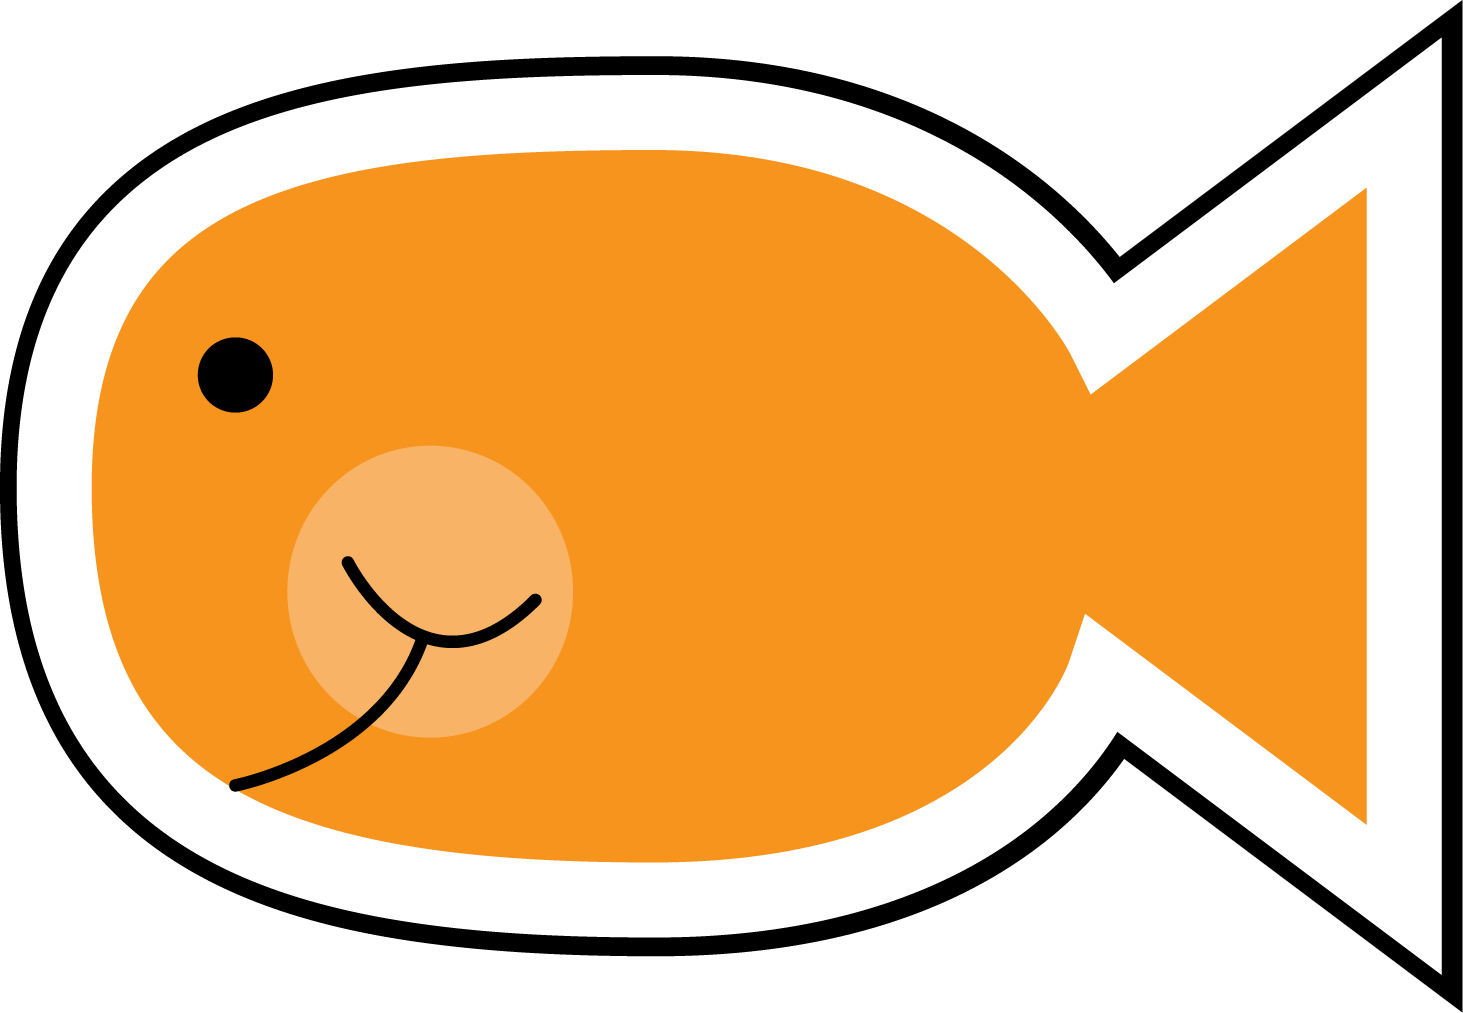 Elegant fish clipart. Of orange png black